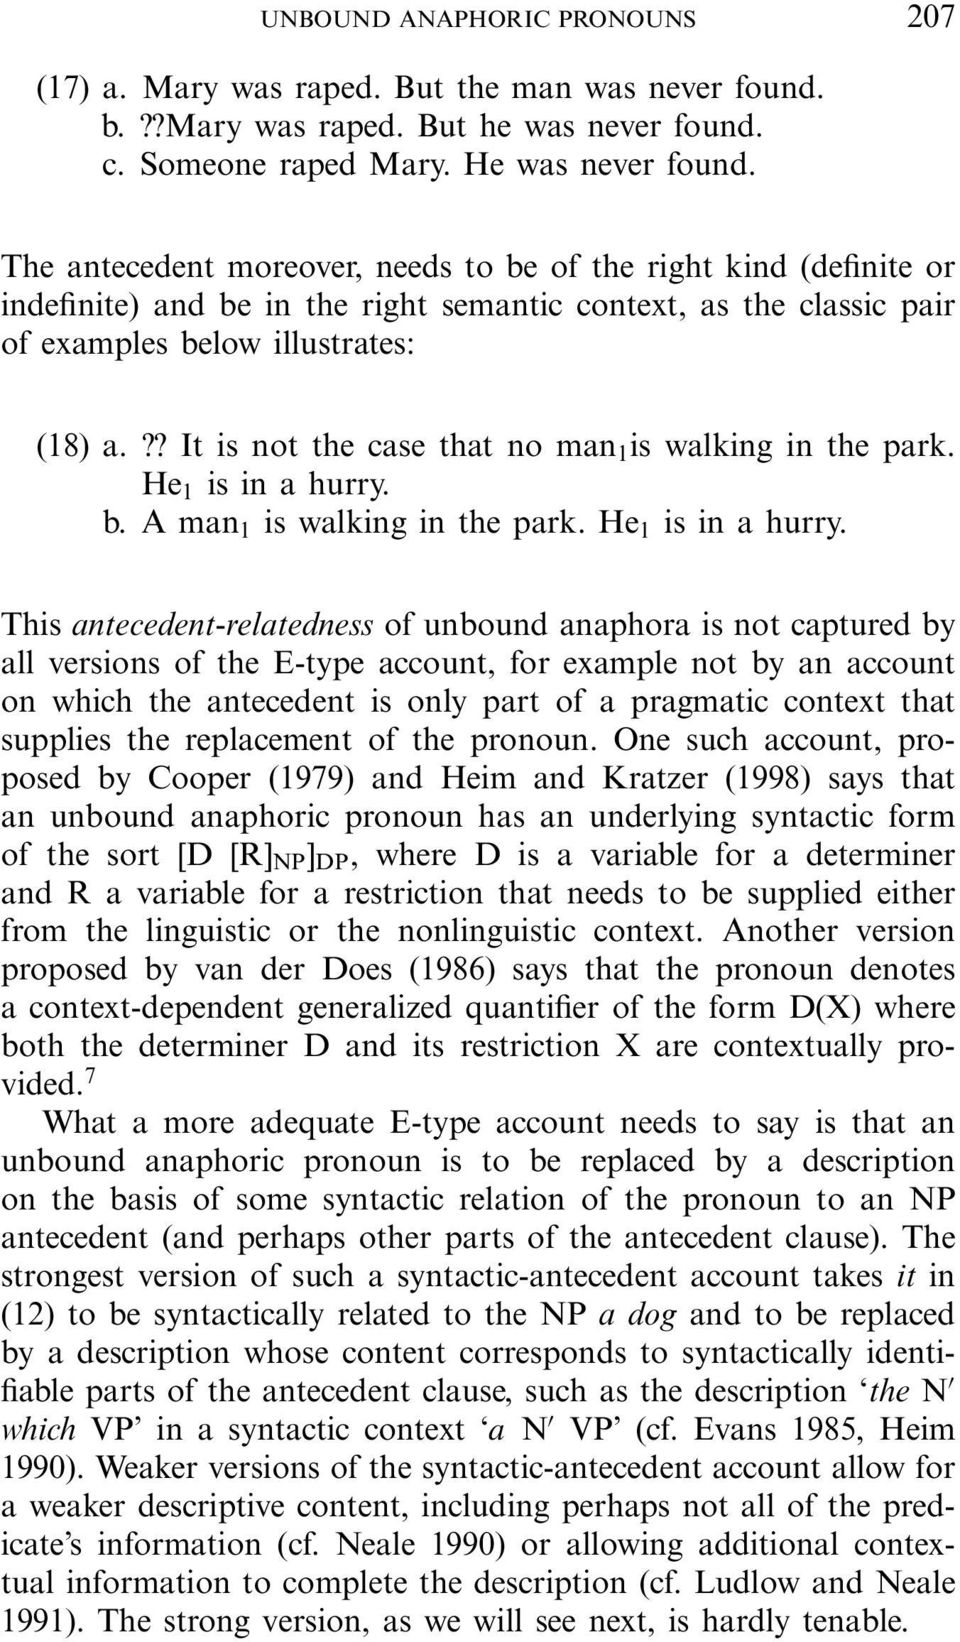 ?? It is not the case that no man 1 is walking in the park. He 1 is in a hurry.